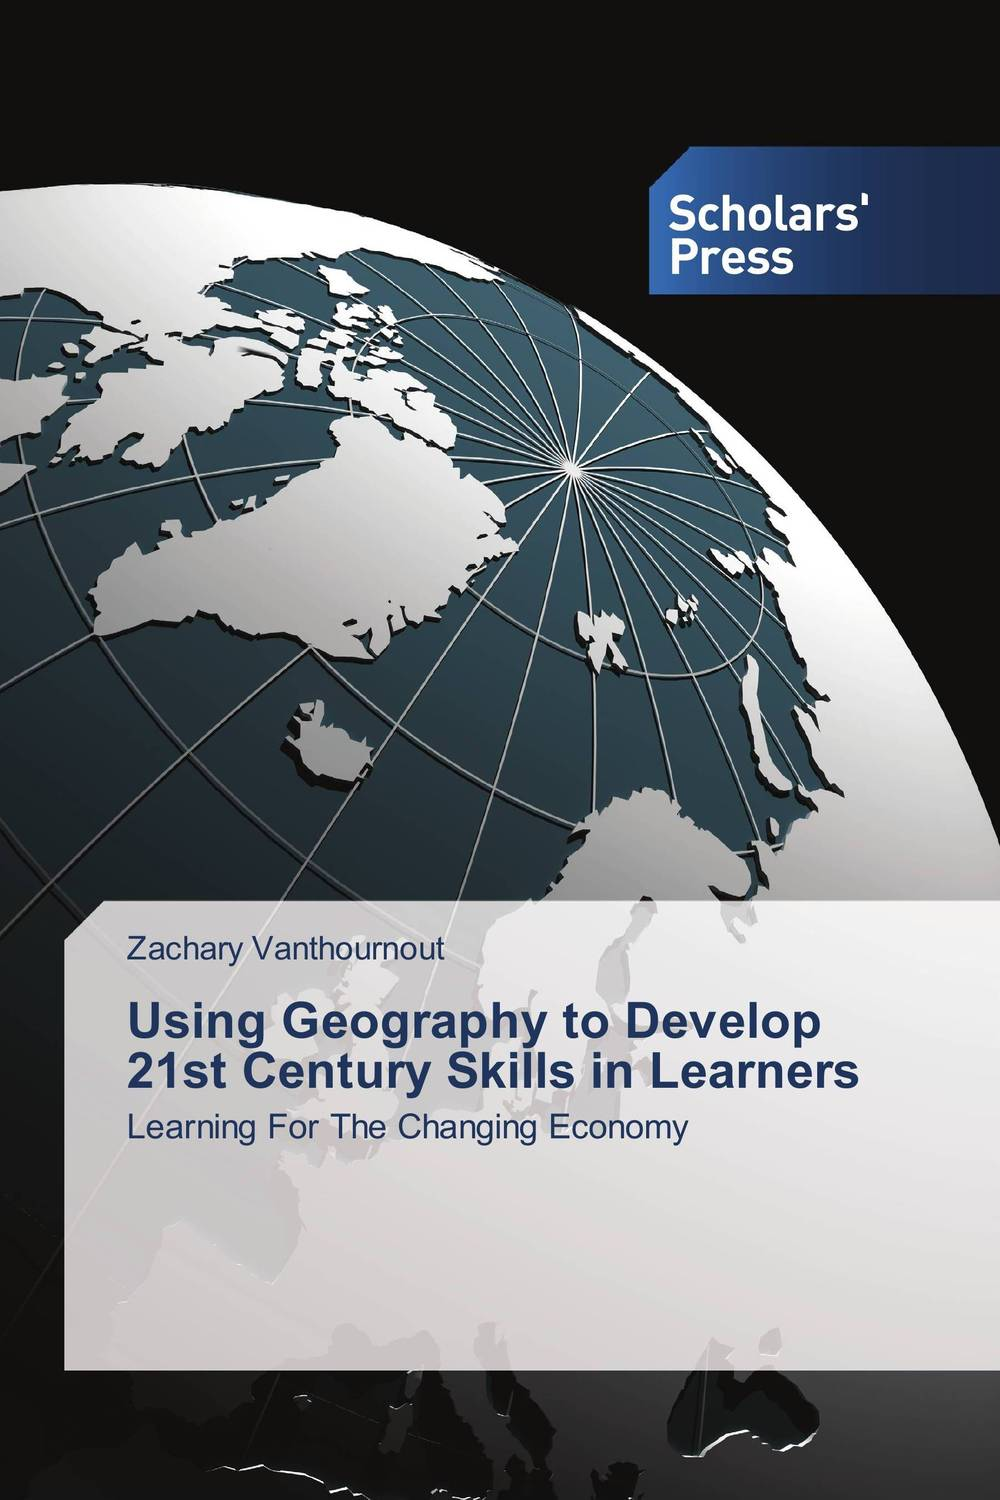 Using Geography to Develop 21st Century Skills in Learners administrative justice in the 21st century